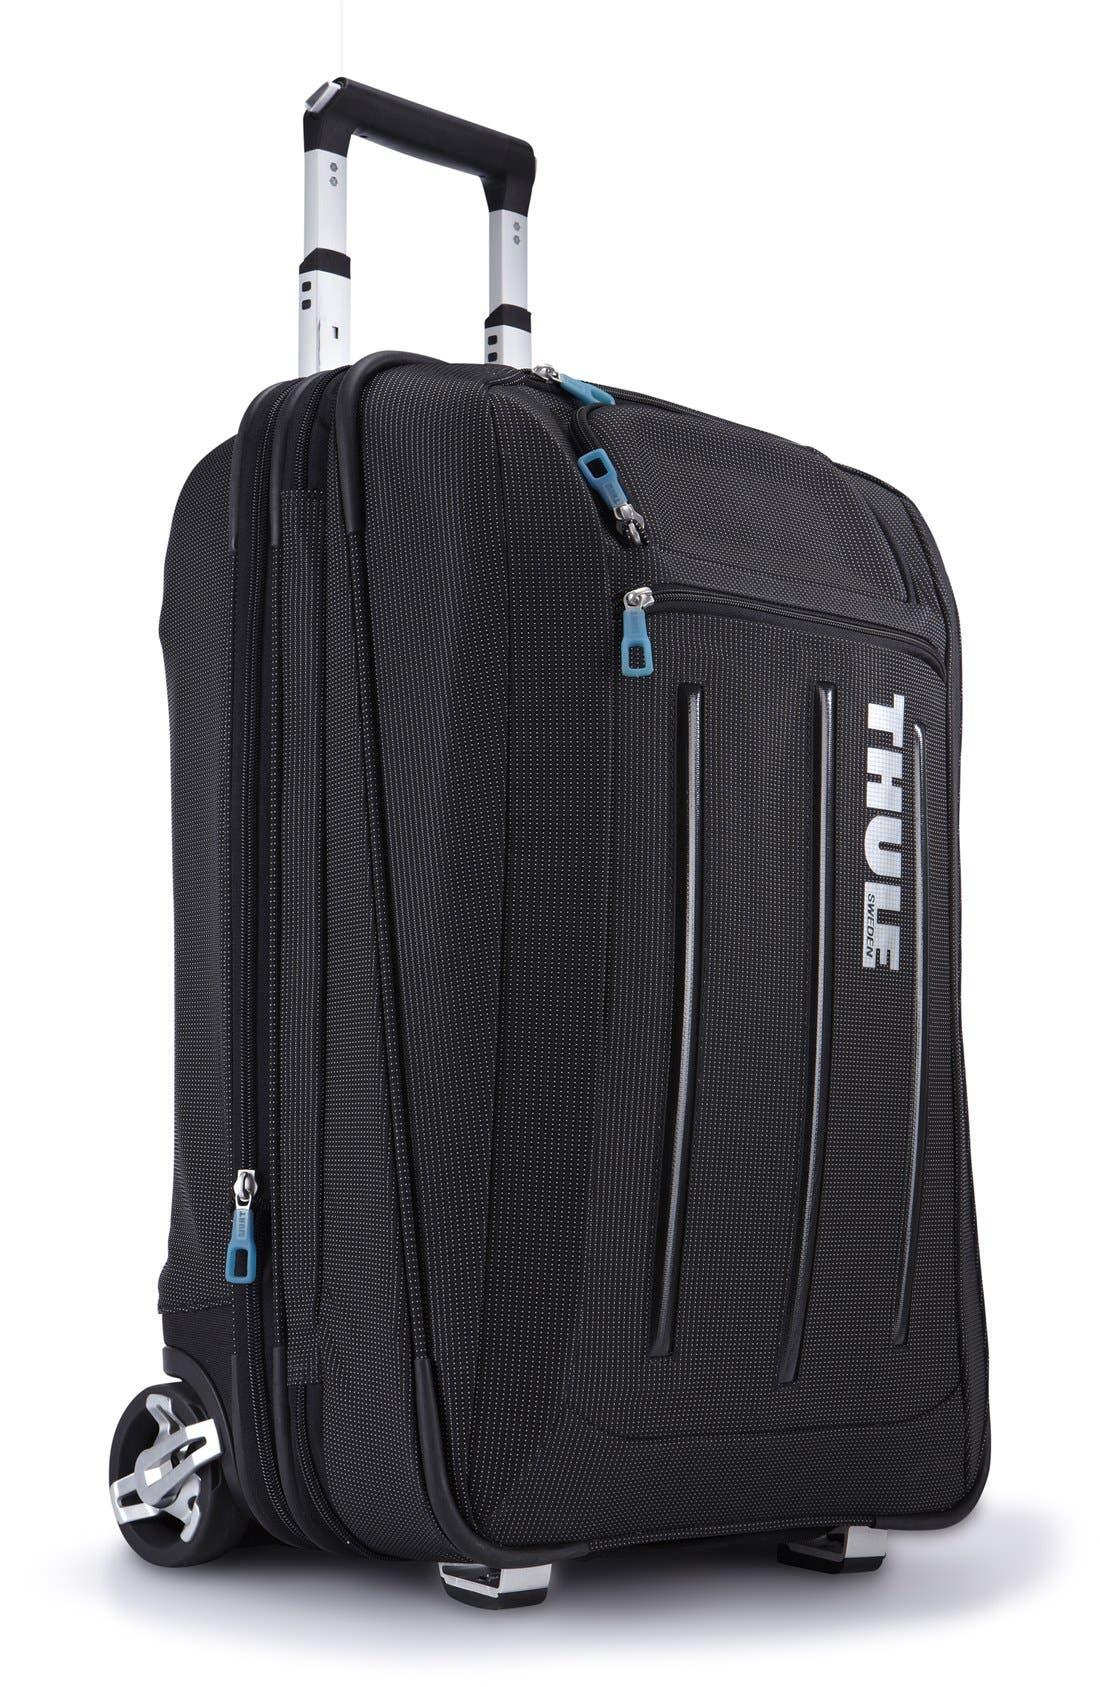 Alternate Image 1 Selected - Thule 'Crossover' Rolling Carry-On with Garment Bag (22 inch)